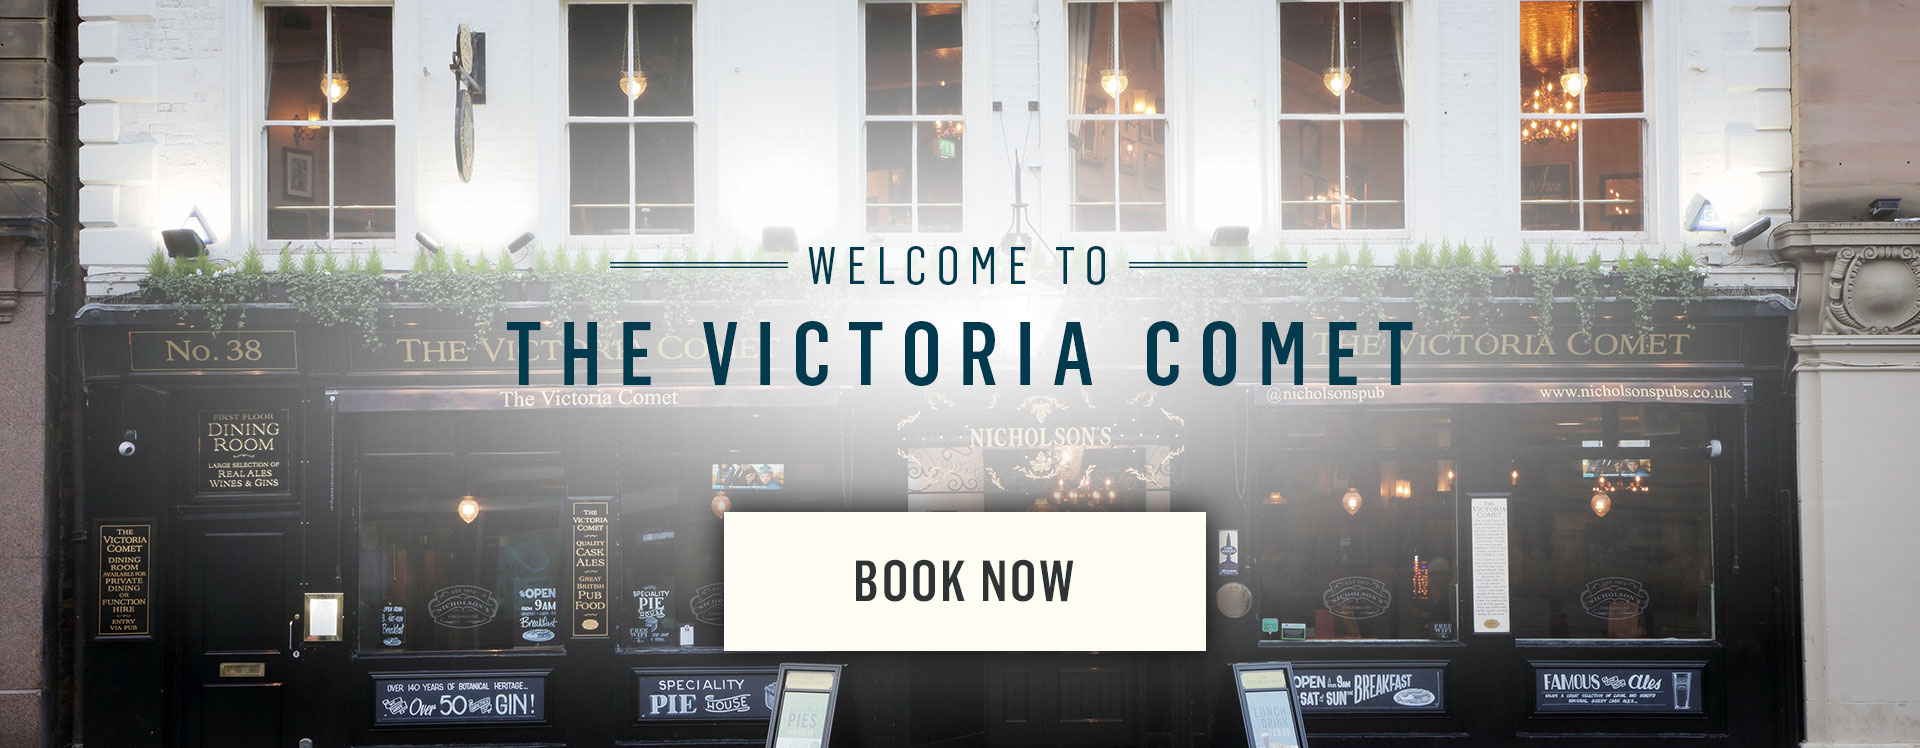 Welcome to The Victoria Comet - Book Now